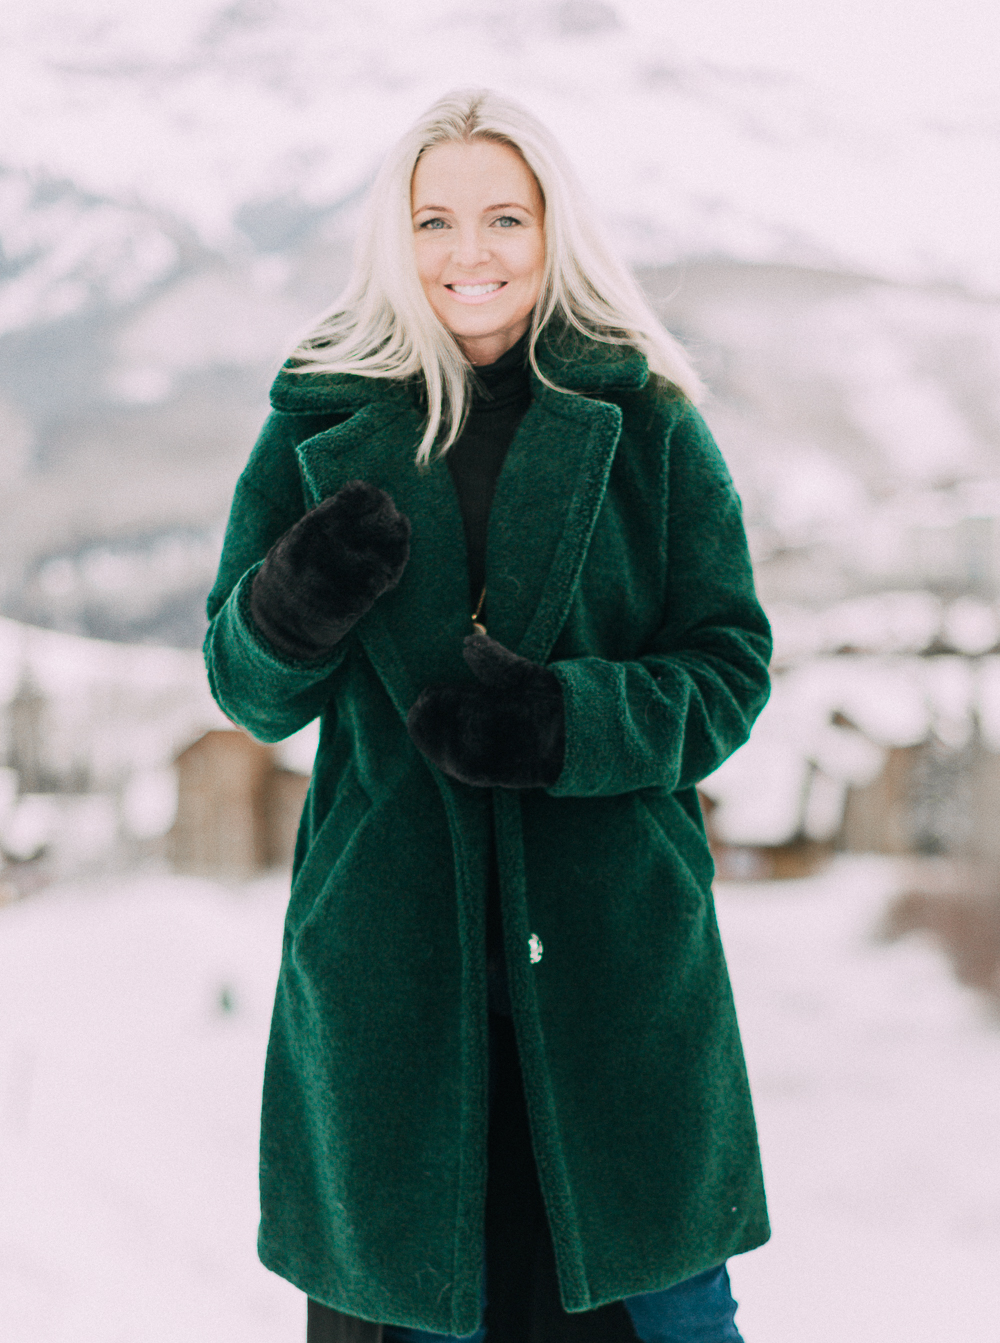 kendall kylie fuzzy green coat outfit perfect for christmas on fashion blogger busbee style